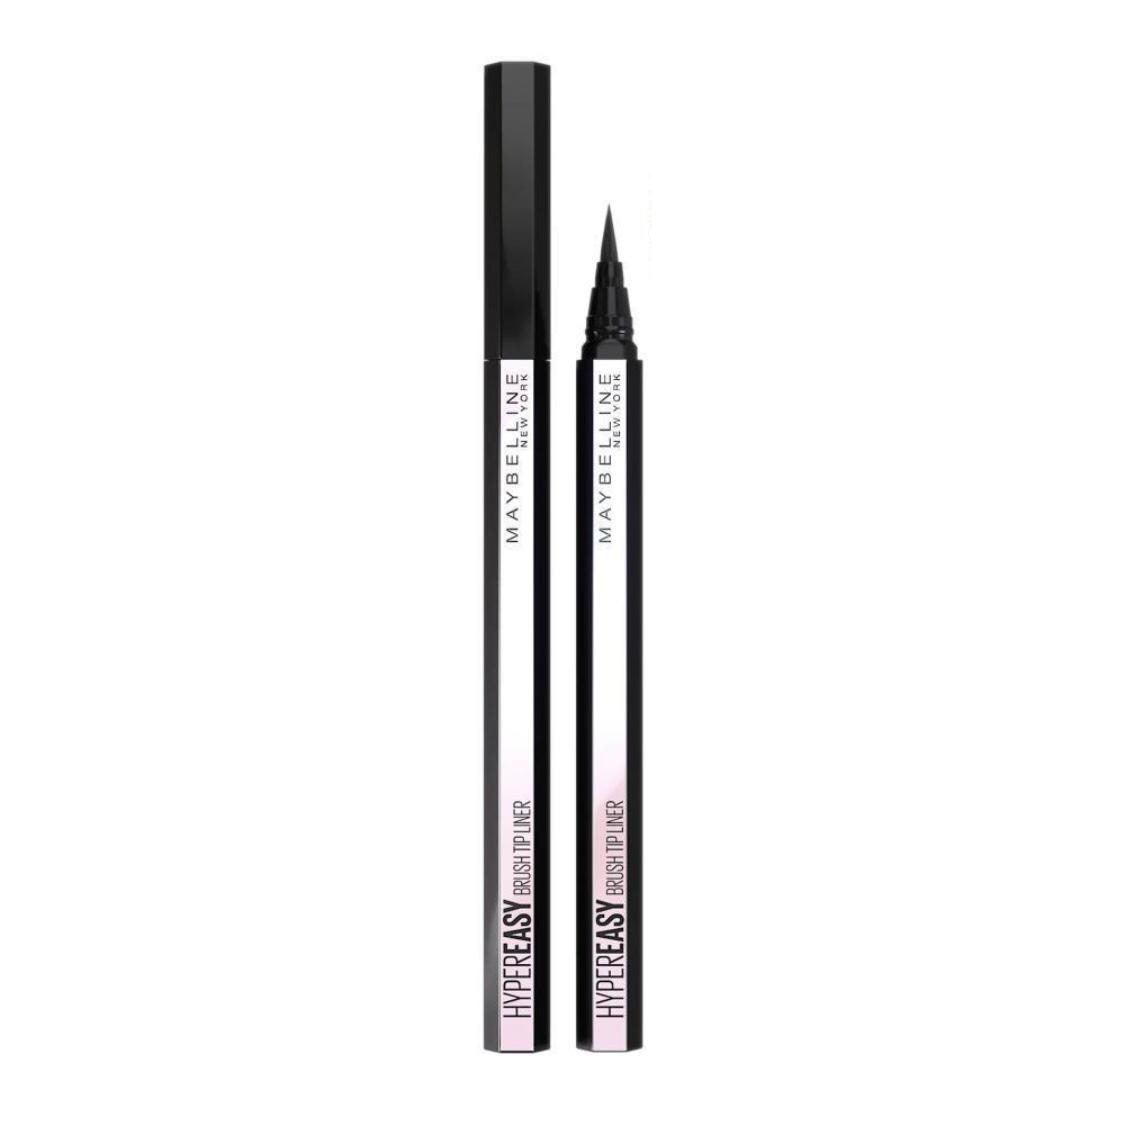 Maybelline New York Hyper Easy Waterproof Liquid Liner on white background